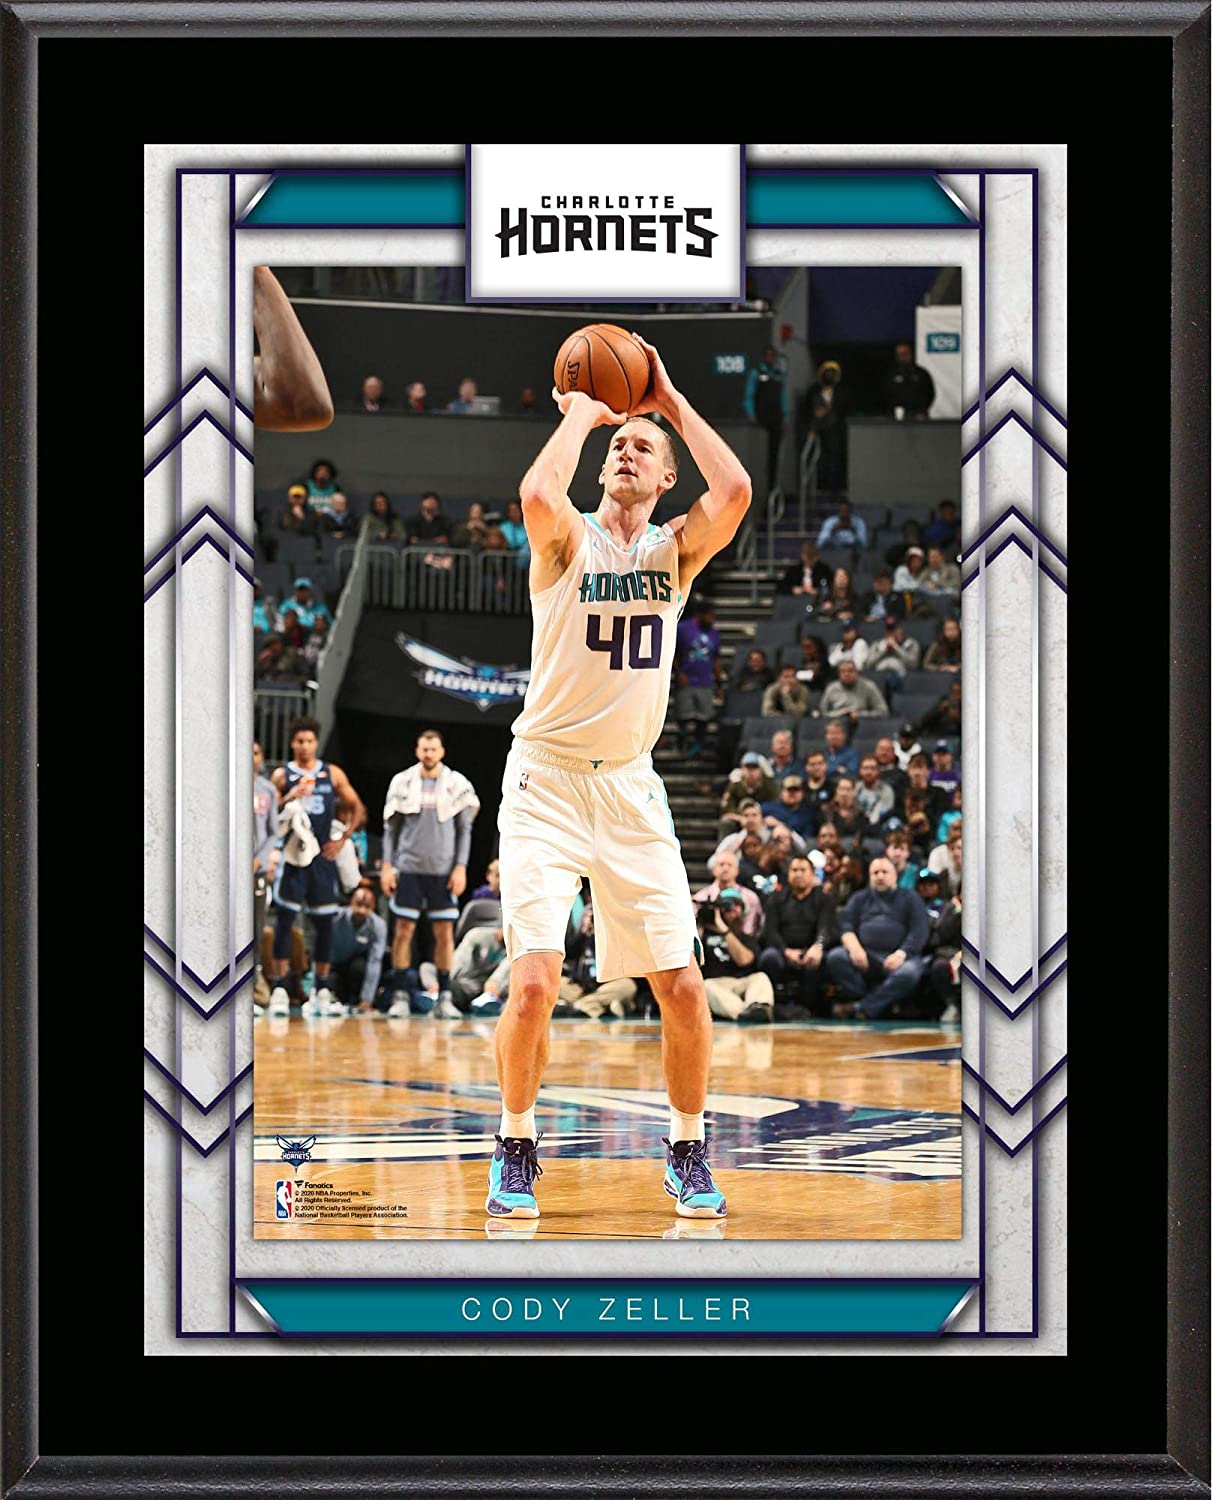 Cody Zeller Charlotte Hornets 10 5 X 13 Sublimated Player Plaque Nba Team Plaques And Collages At Amazon S Sports Collectibles Store